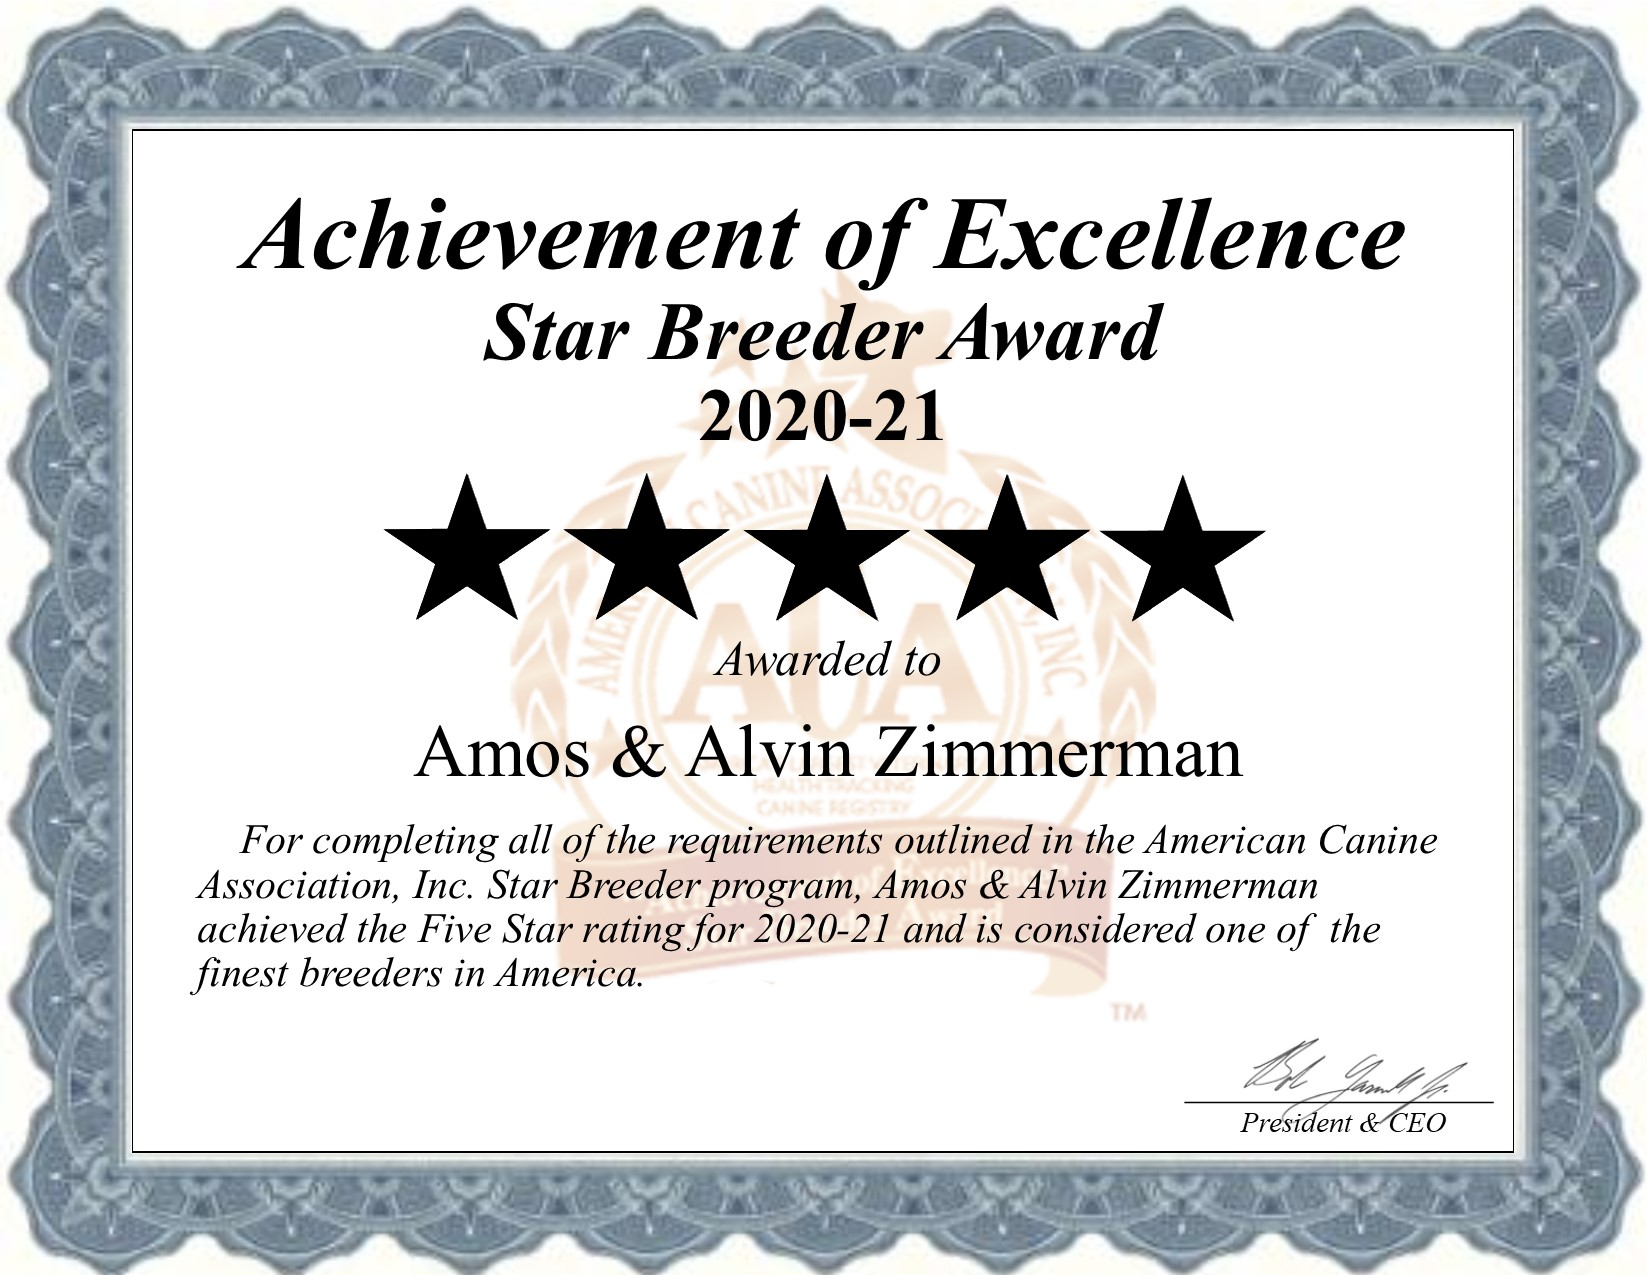 amos, alvin, zimmerman, dog, breeder, certificate, usda, reports, amos-zimmerman, dog-breeder, alvin-zimmerman, east, earl, pa, pennsylvania, eastearl, puppy, dog, kennels, mill, puppymill, usda, 5-star, ACA, ICA, registered, show handler, Yorkshire, Terrier, 23-A-0005, 23A0005